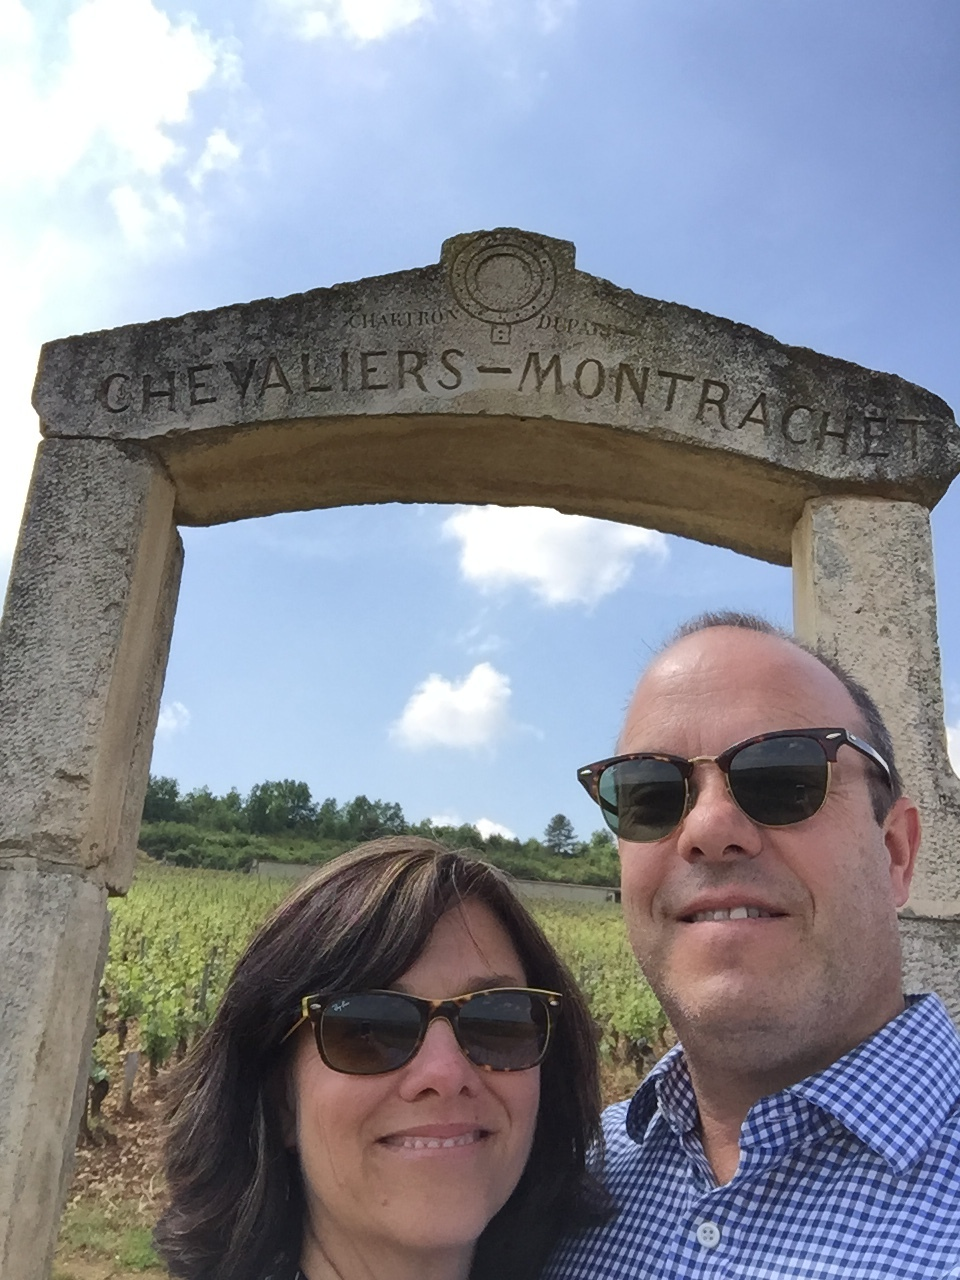 When I get frustrated with technology I imagine myself here, in  Burgundy, France.   Alright, we need to work on our selfie skills, too......